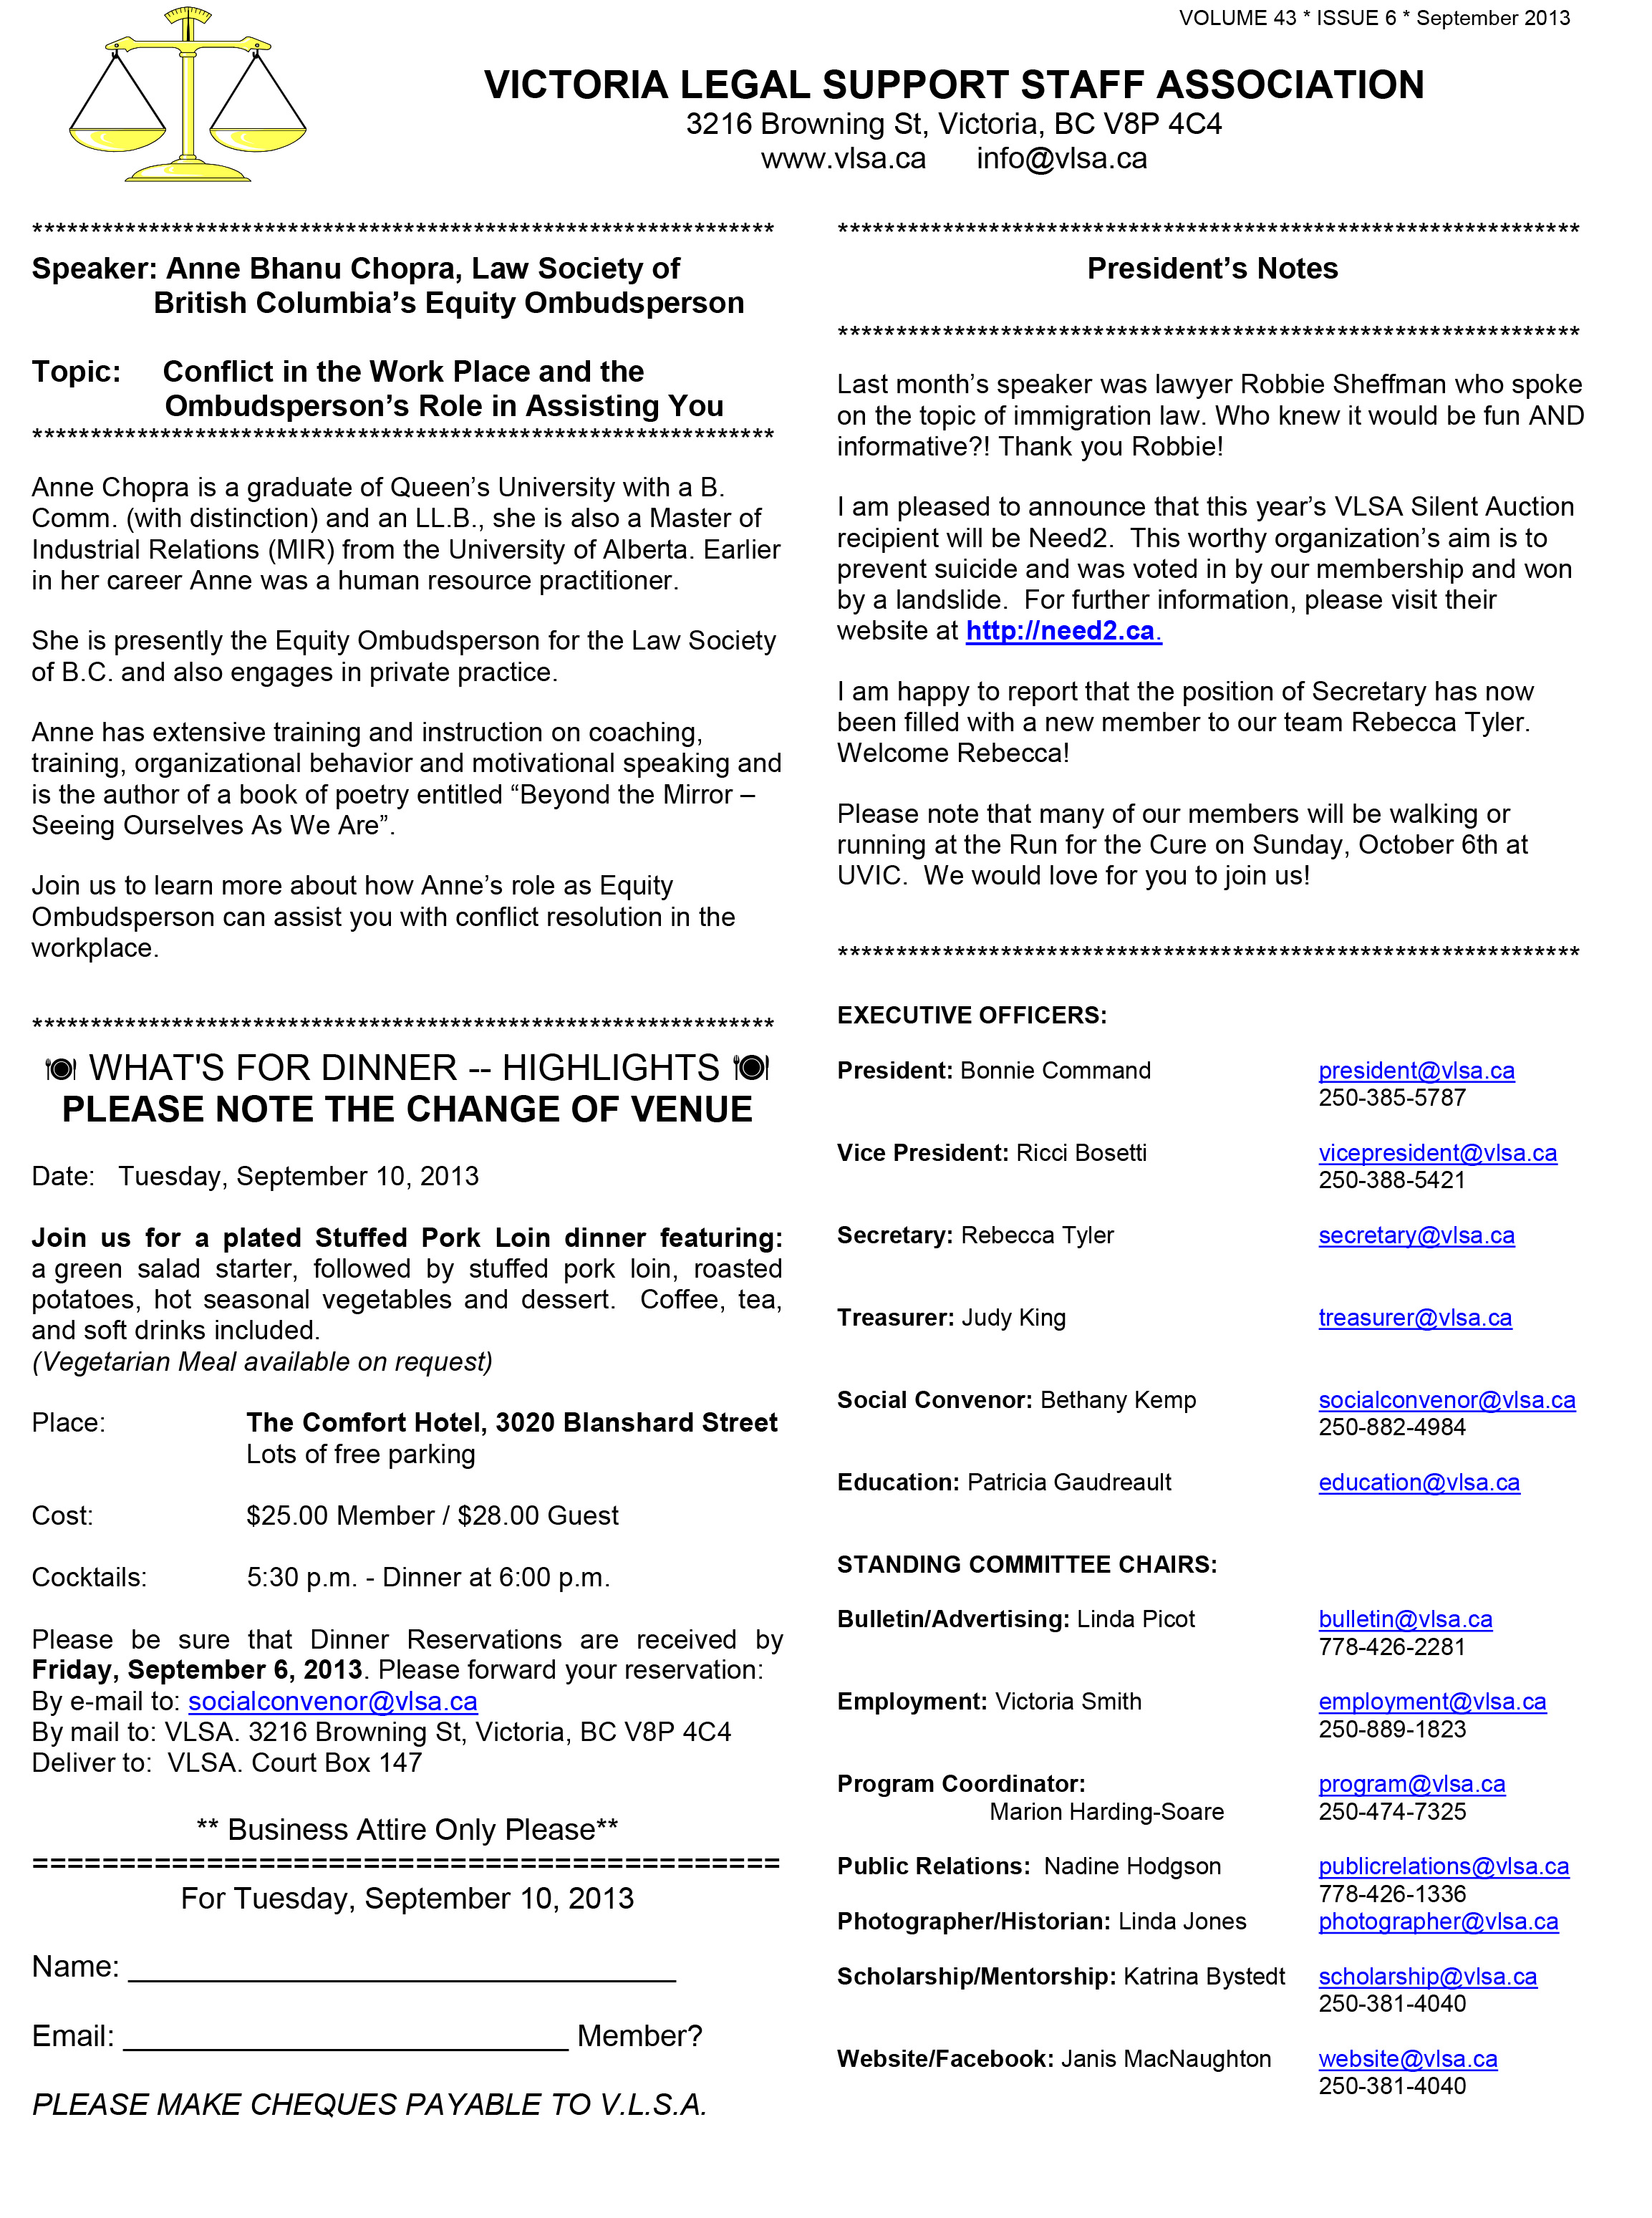 Microsoft Word - Sept bulletin - DRAFT